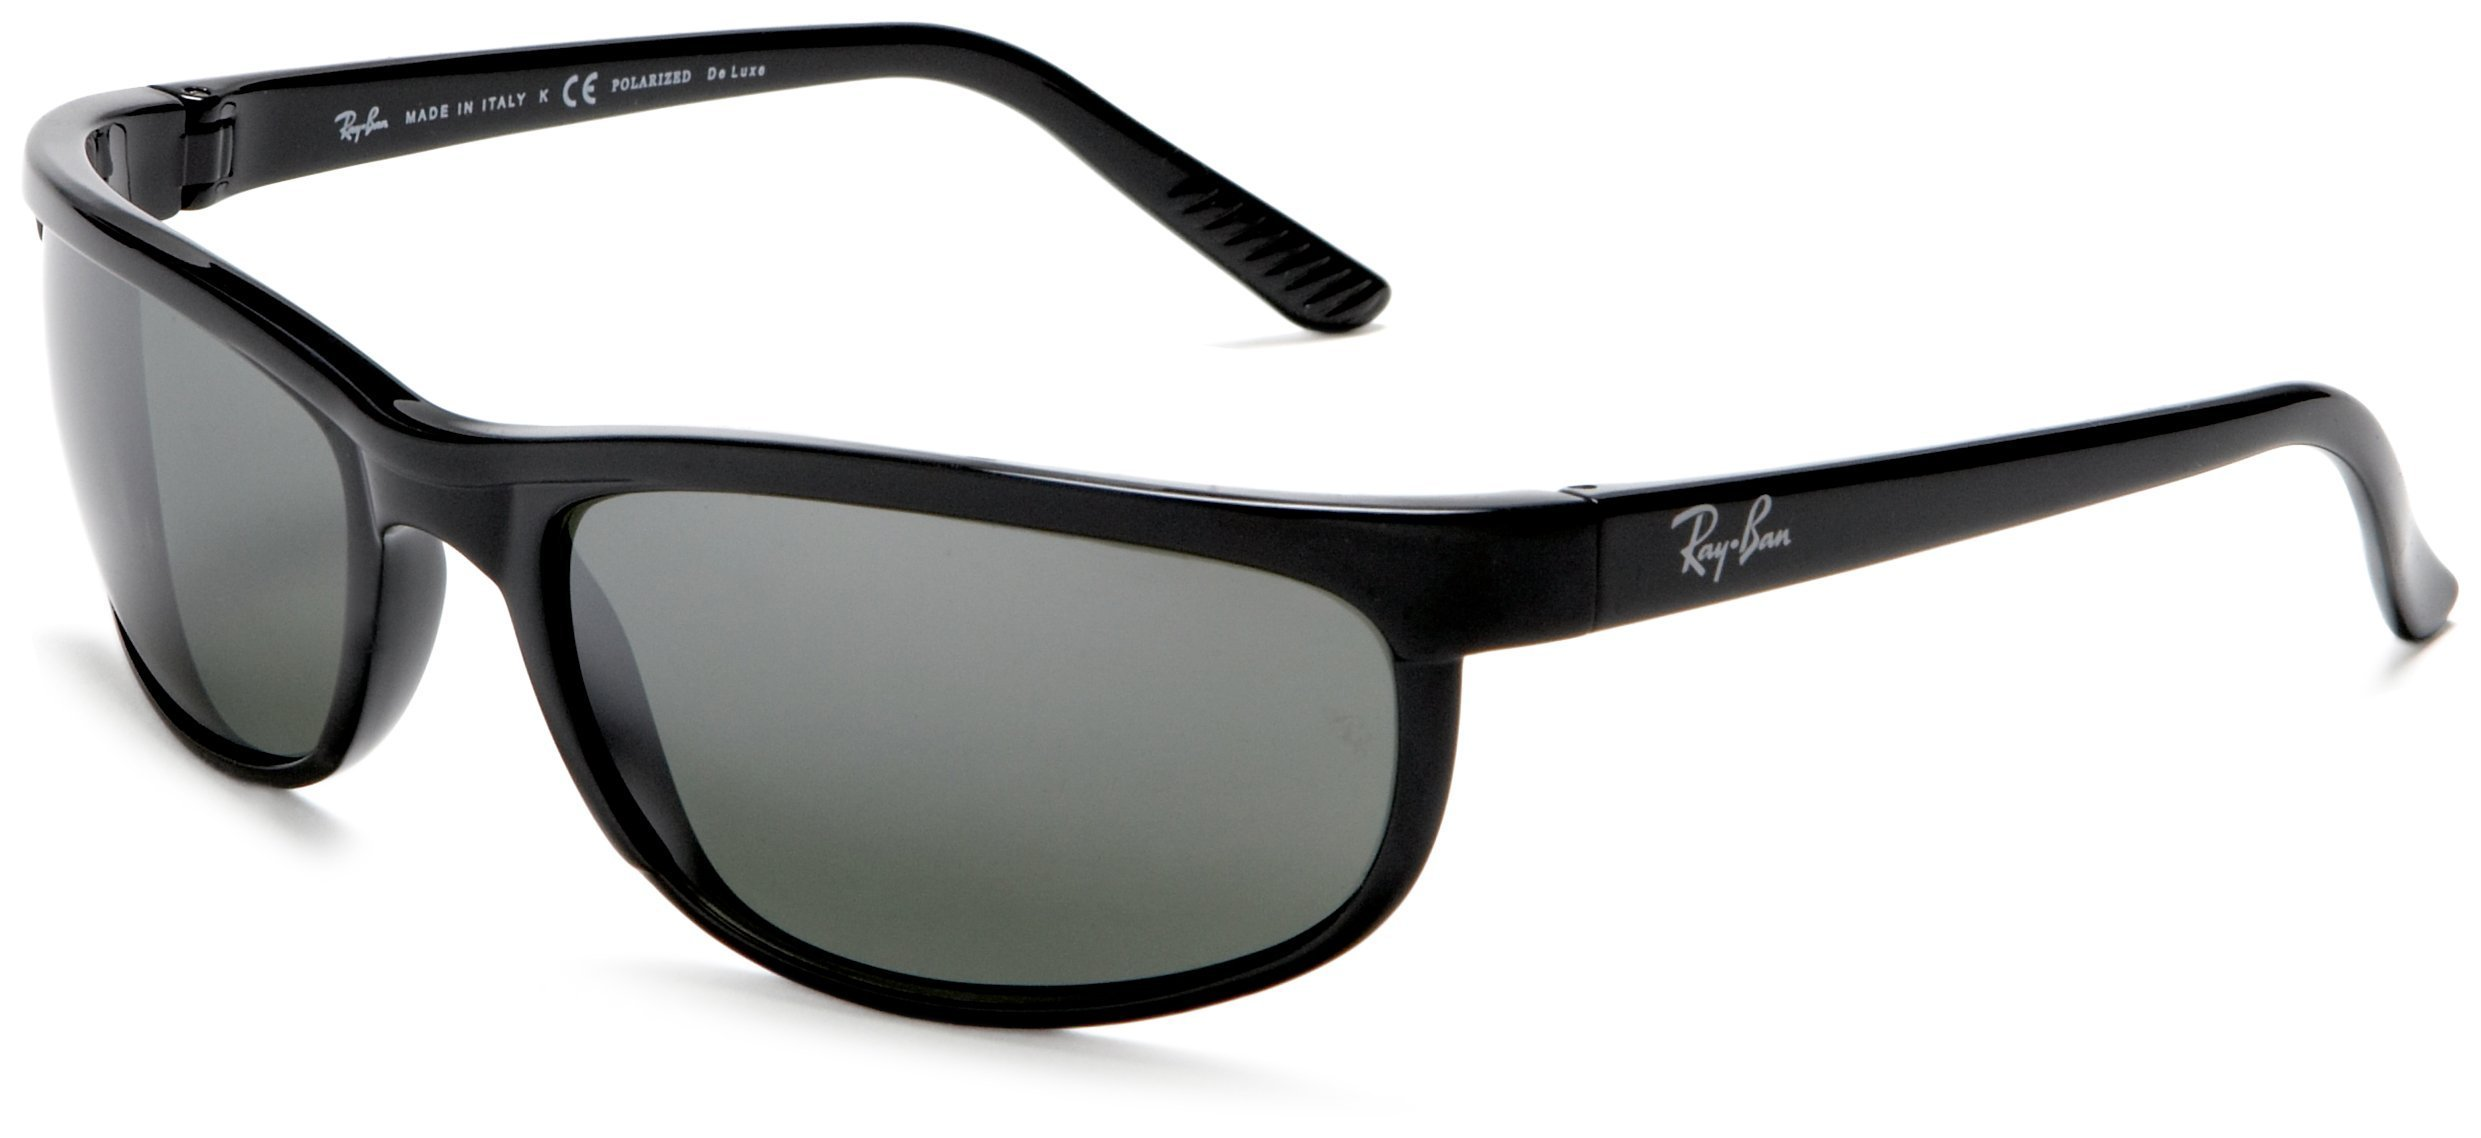 Ray-Ban Men RB2027 Predator 2 Polarized Sunglasses, Black/Grey Mirror, 62mm by Ray-Ban